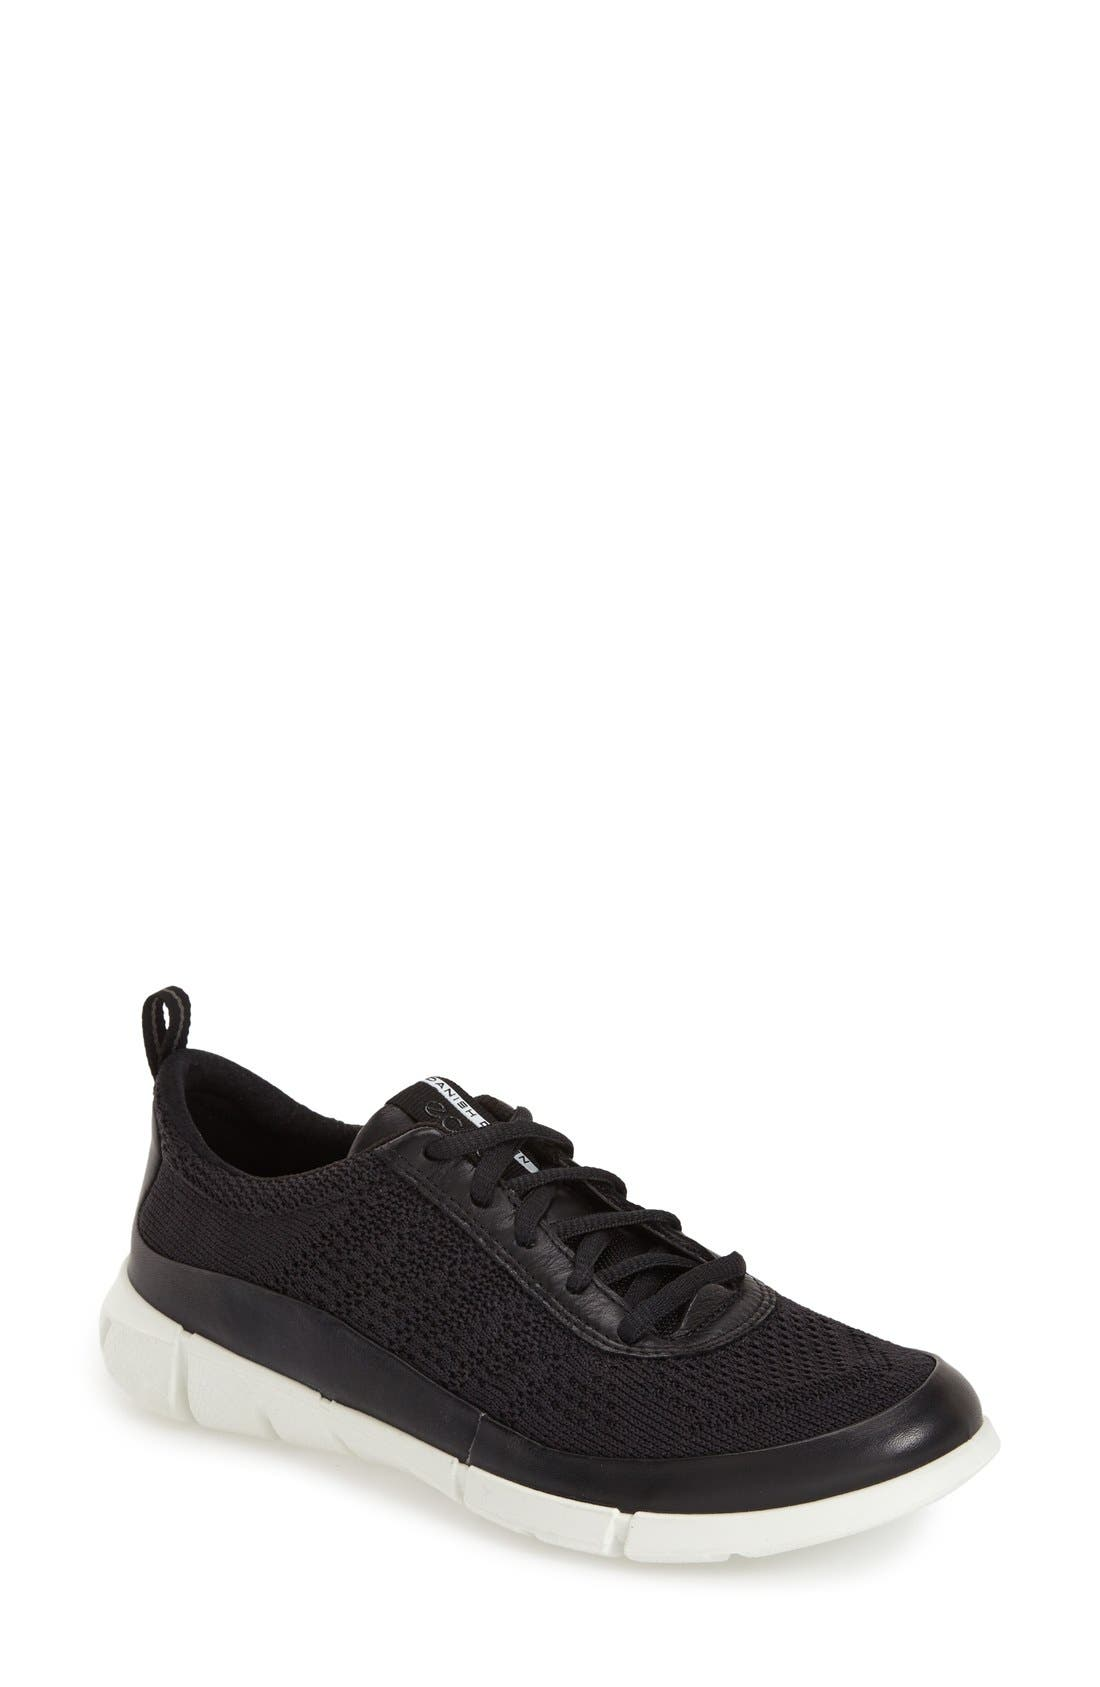 'Intrinsic' Sneaker,                         Main,                         color, 001